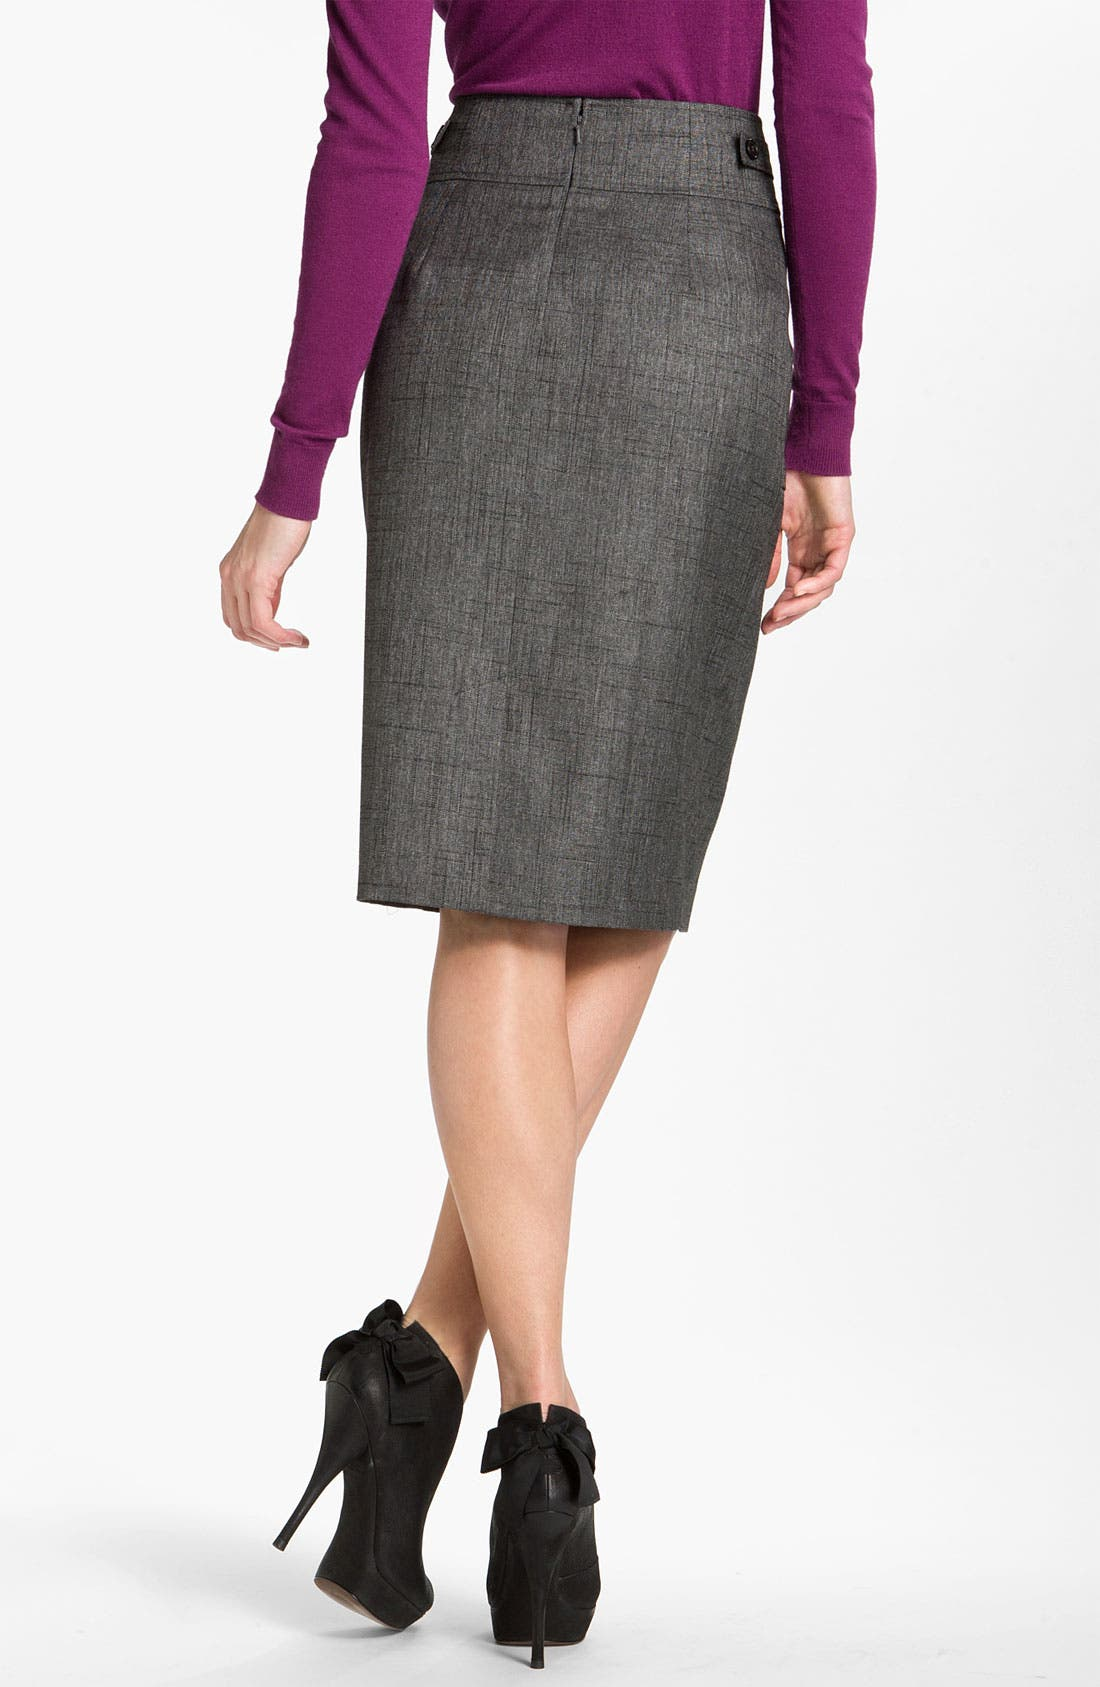 Patch Pocket Pencil Skirt,                             Alternate thumbnail 4, color,                             001